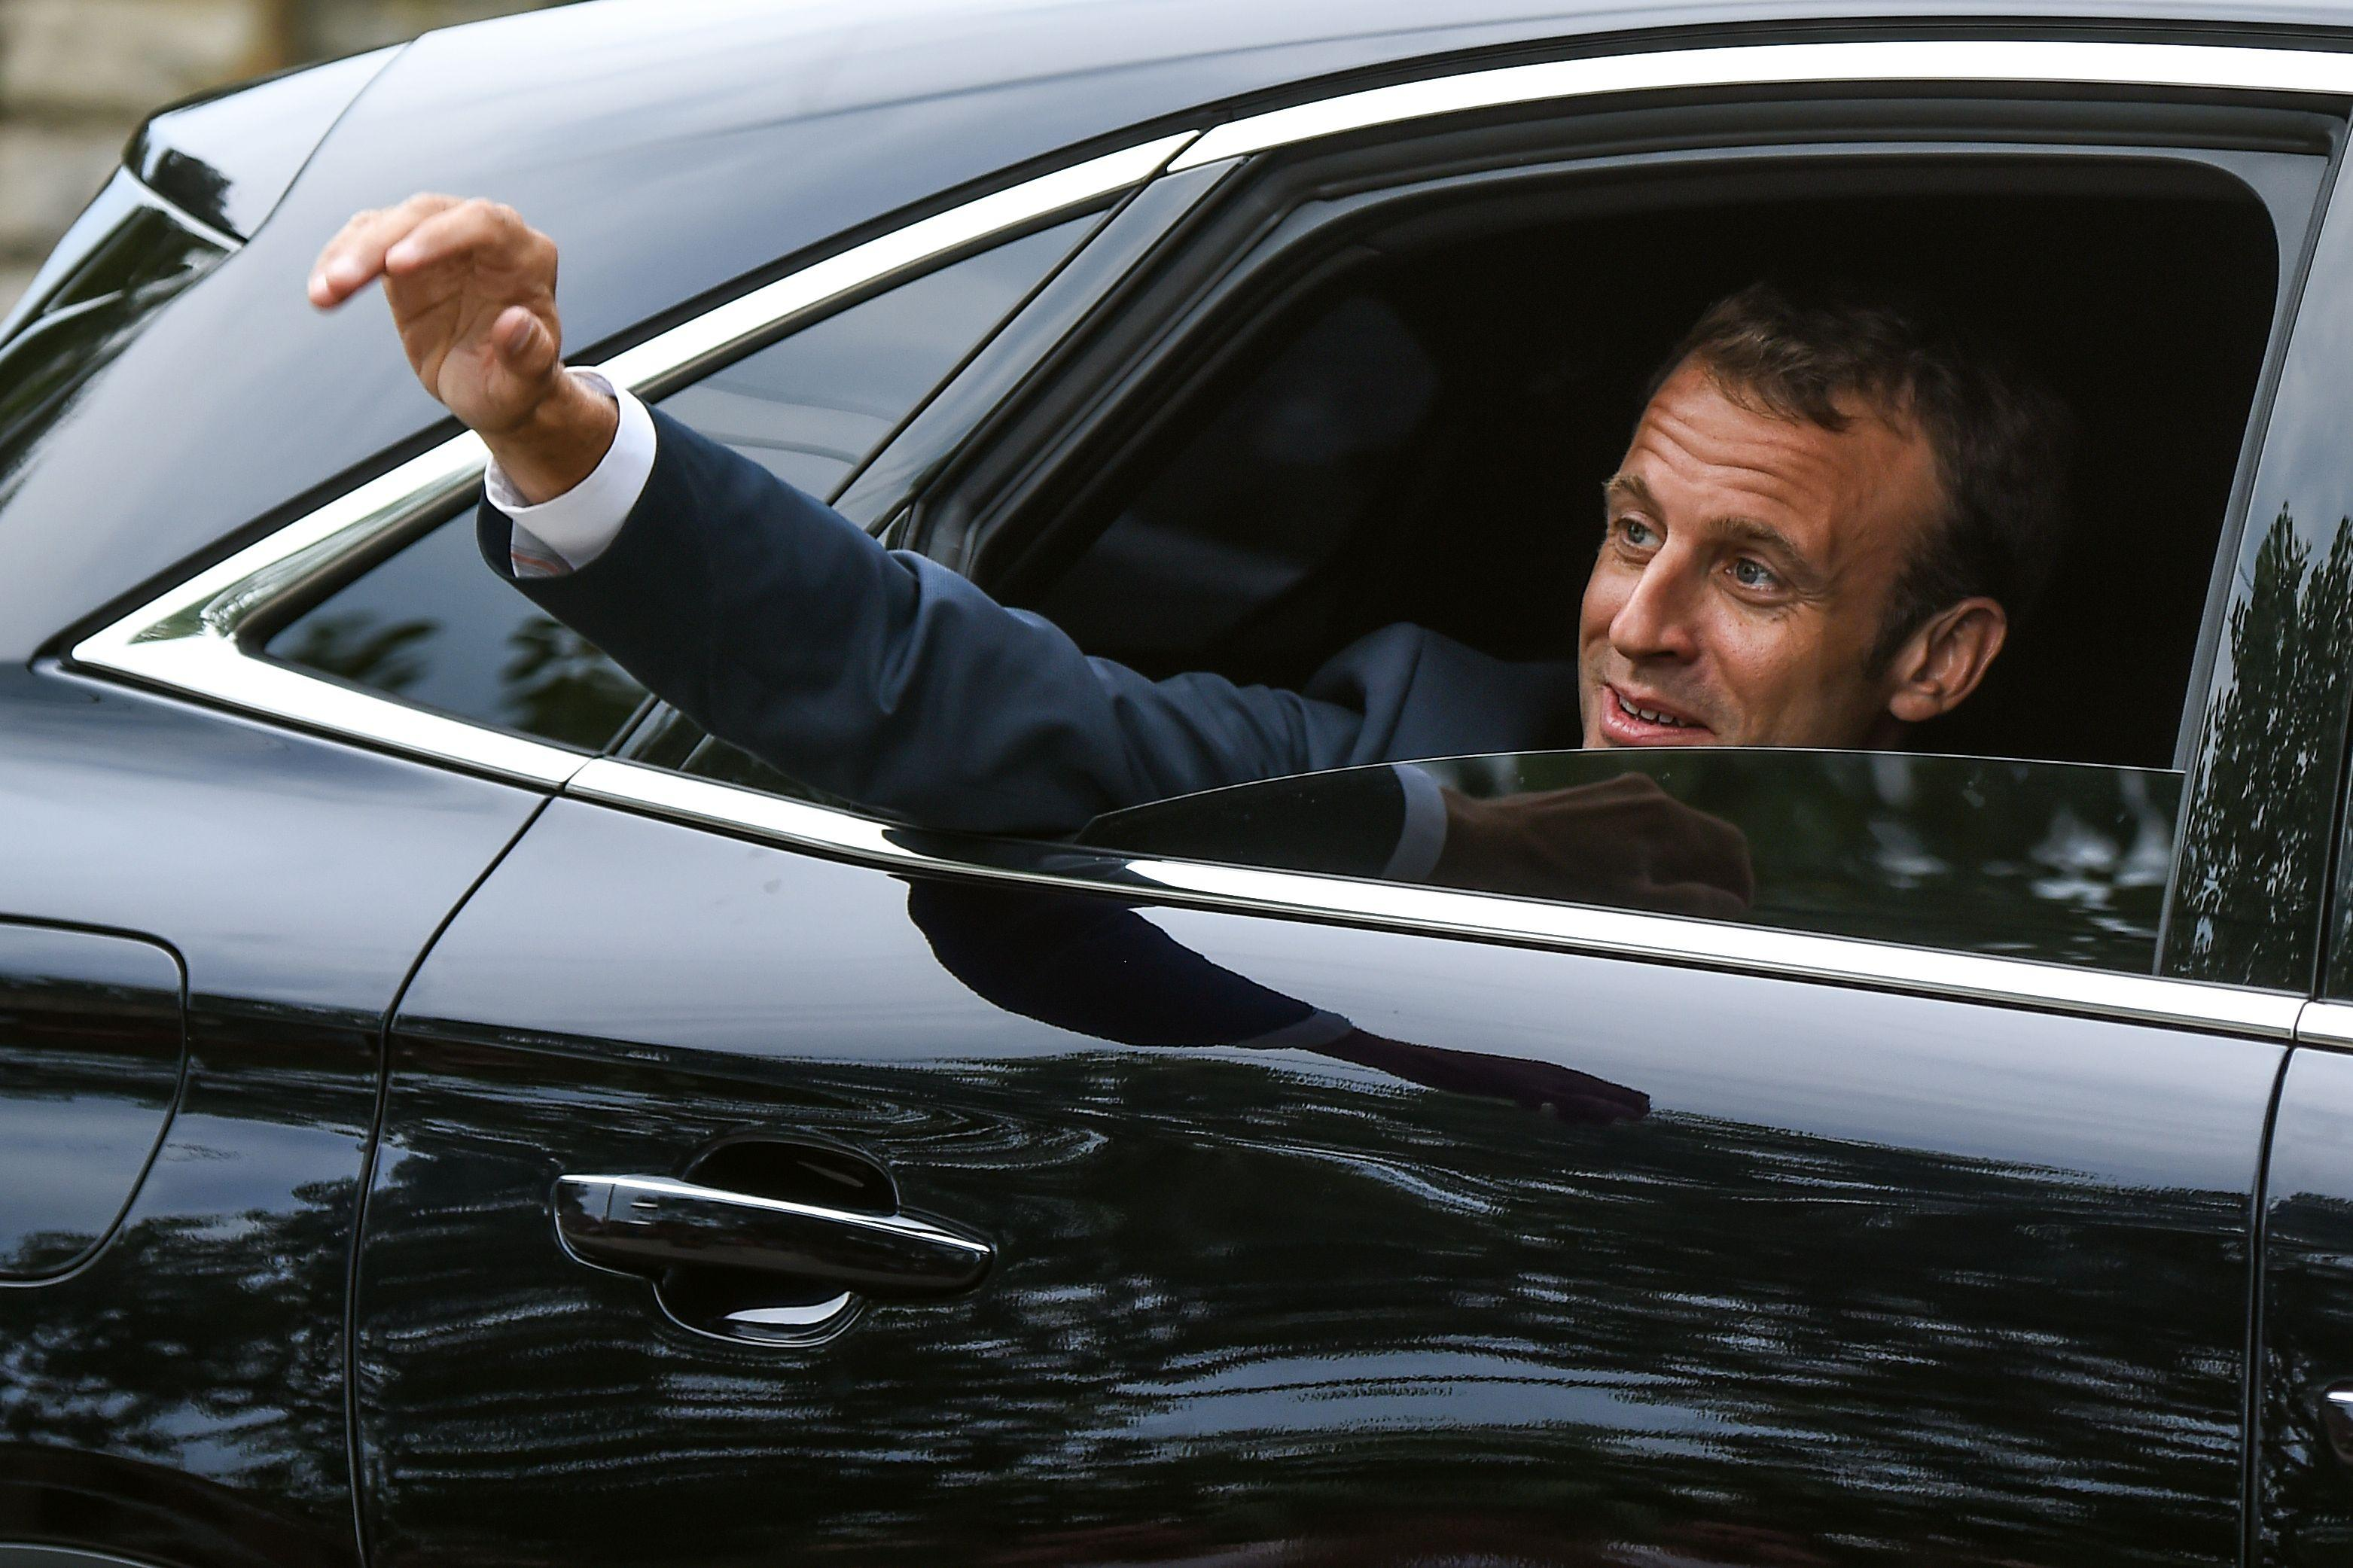 If French president, Emmanuel Macron, attends the event security will have to be even tighter